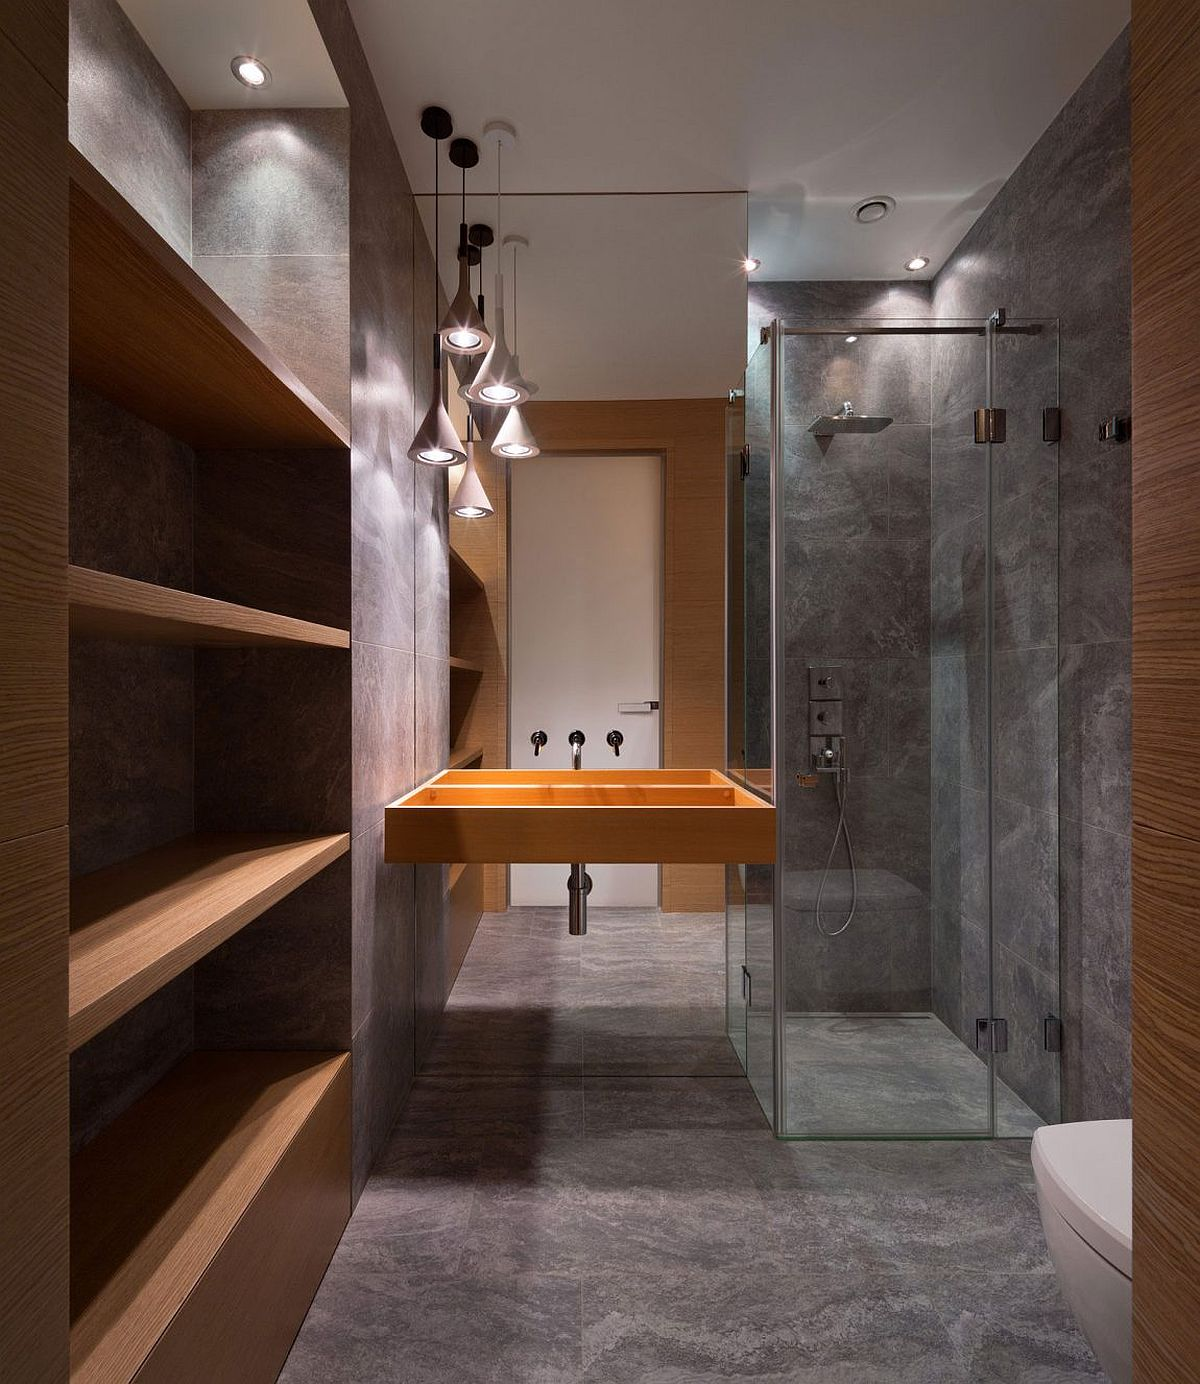 Smart modern abthroom with textured walls and glass shower area